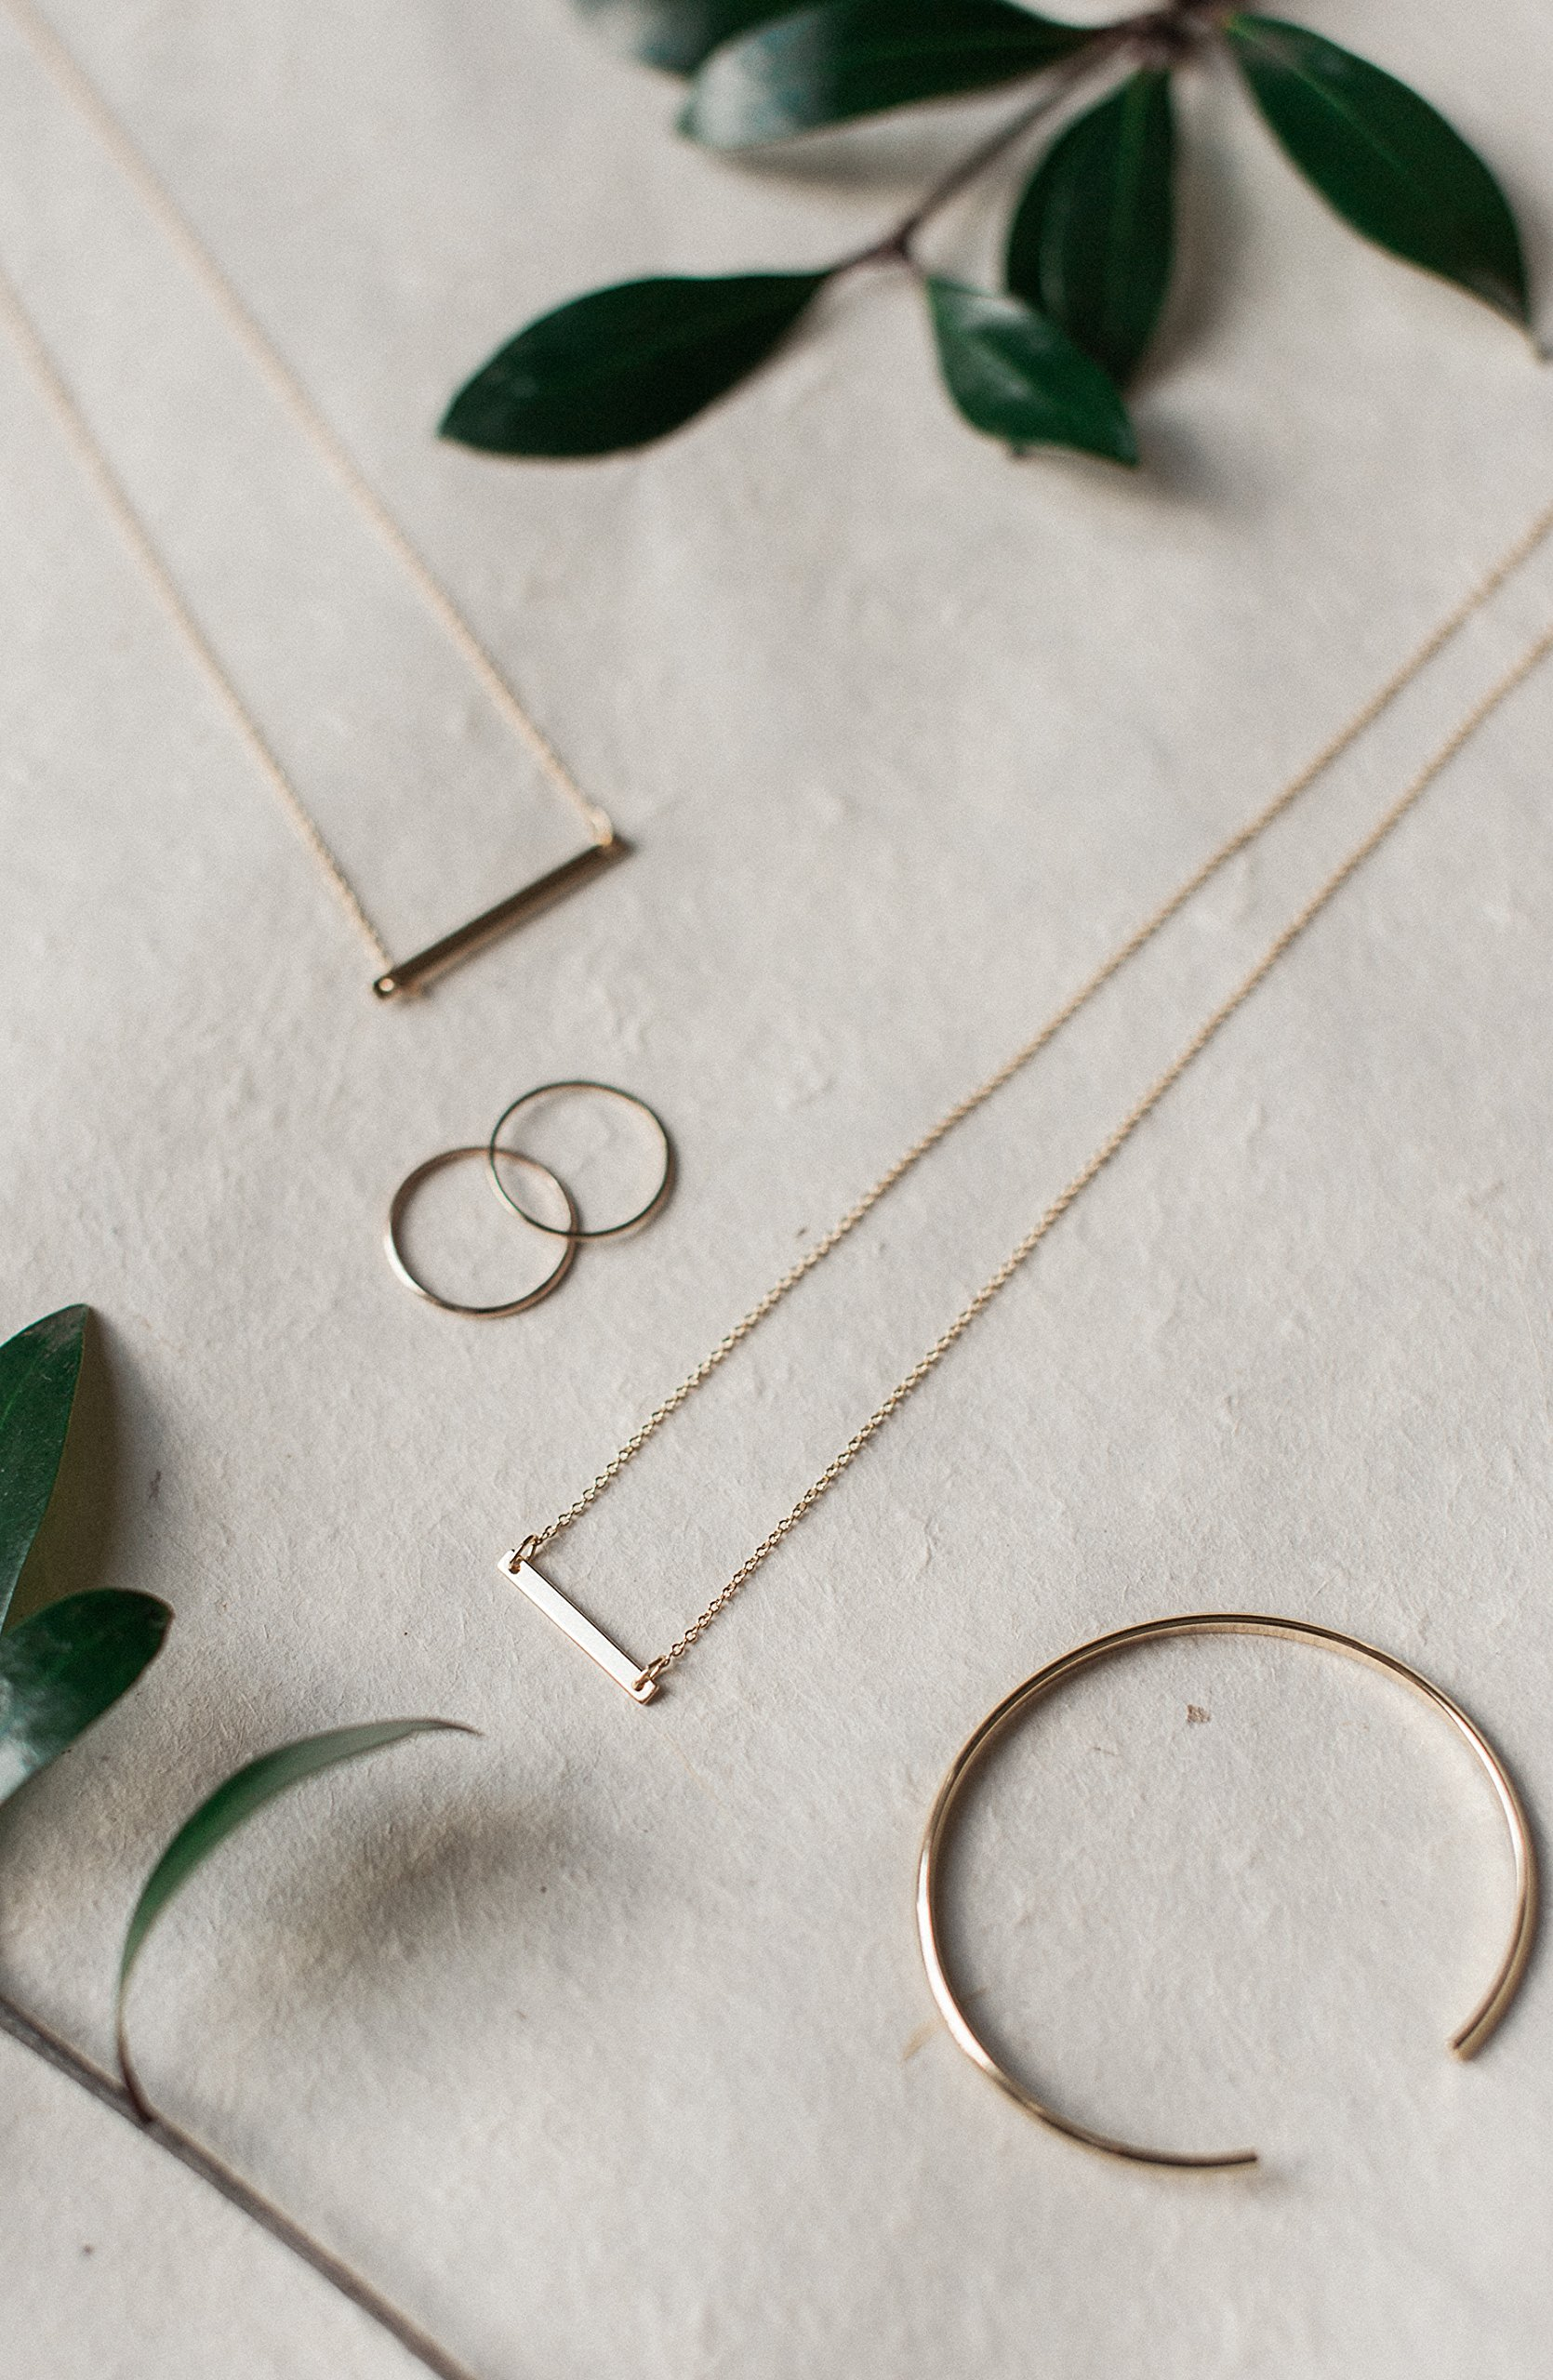 HONEYCAT 24k Gold Plated, 18k Rose Gold Plated, or Silver Classic Horizontal Bar Necklace | Minimalist, Delicate Jewelry (Silver) by HONEYCAT (Image #5)